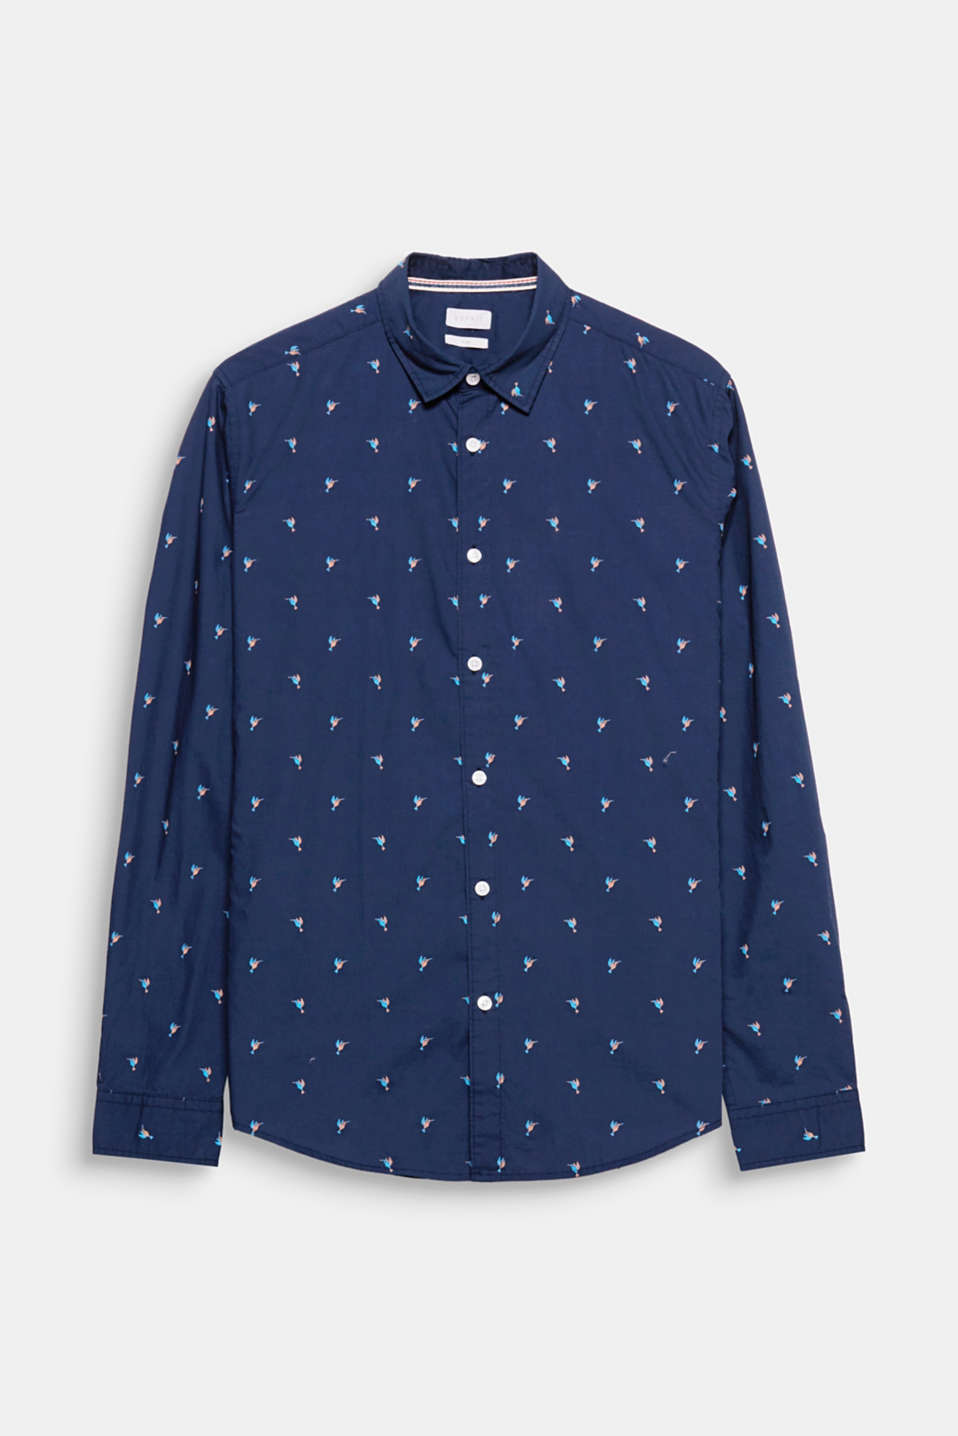 The charming, understated print gives this shirt a fresh new look.